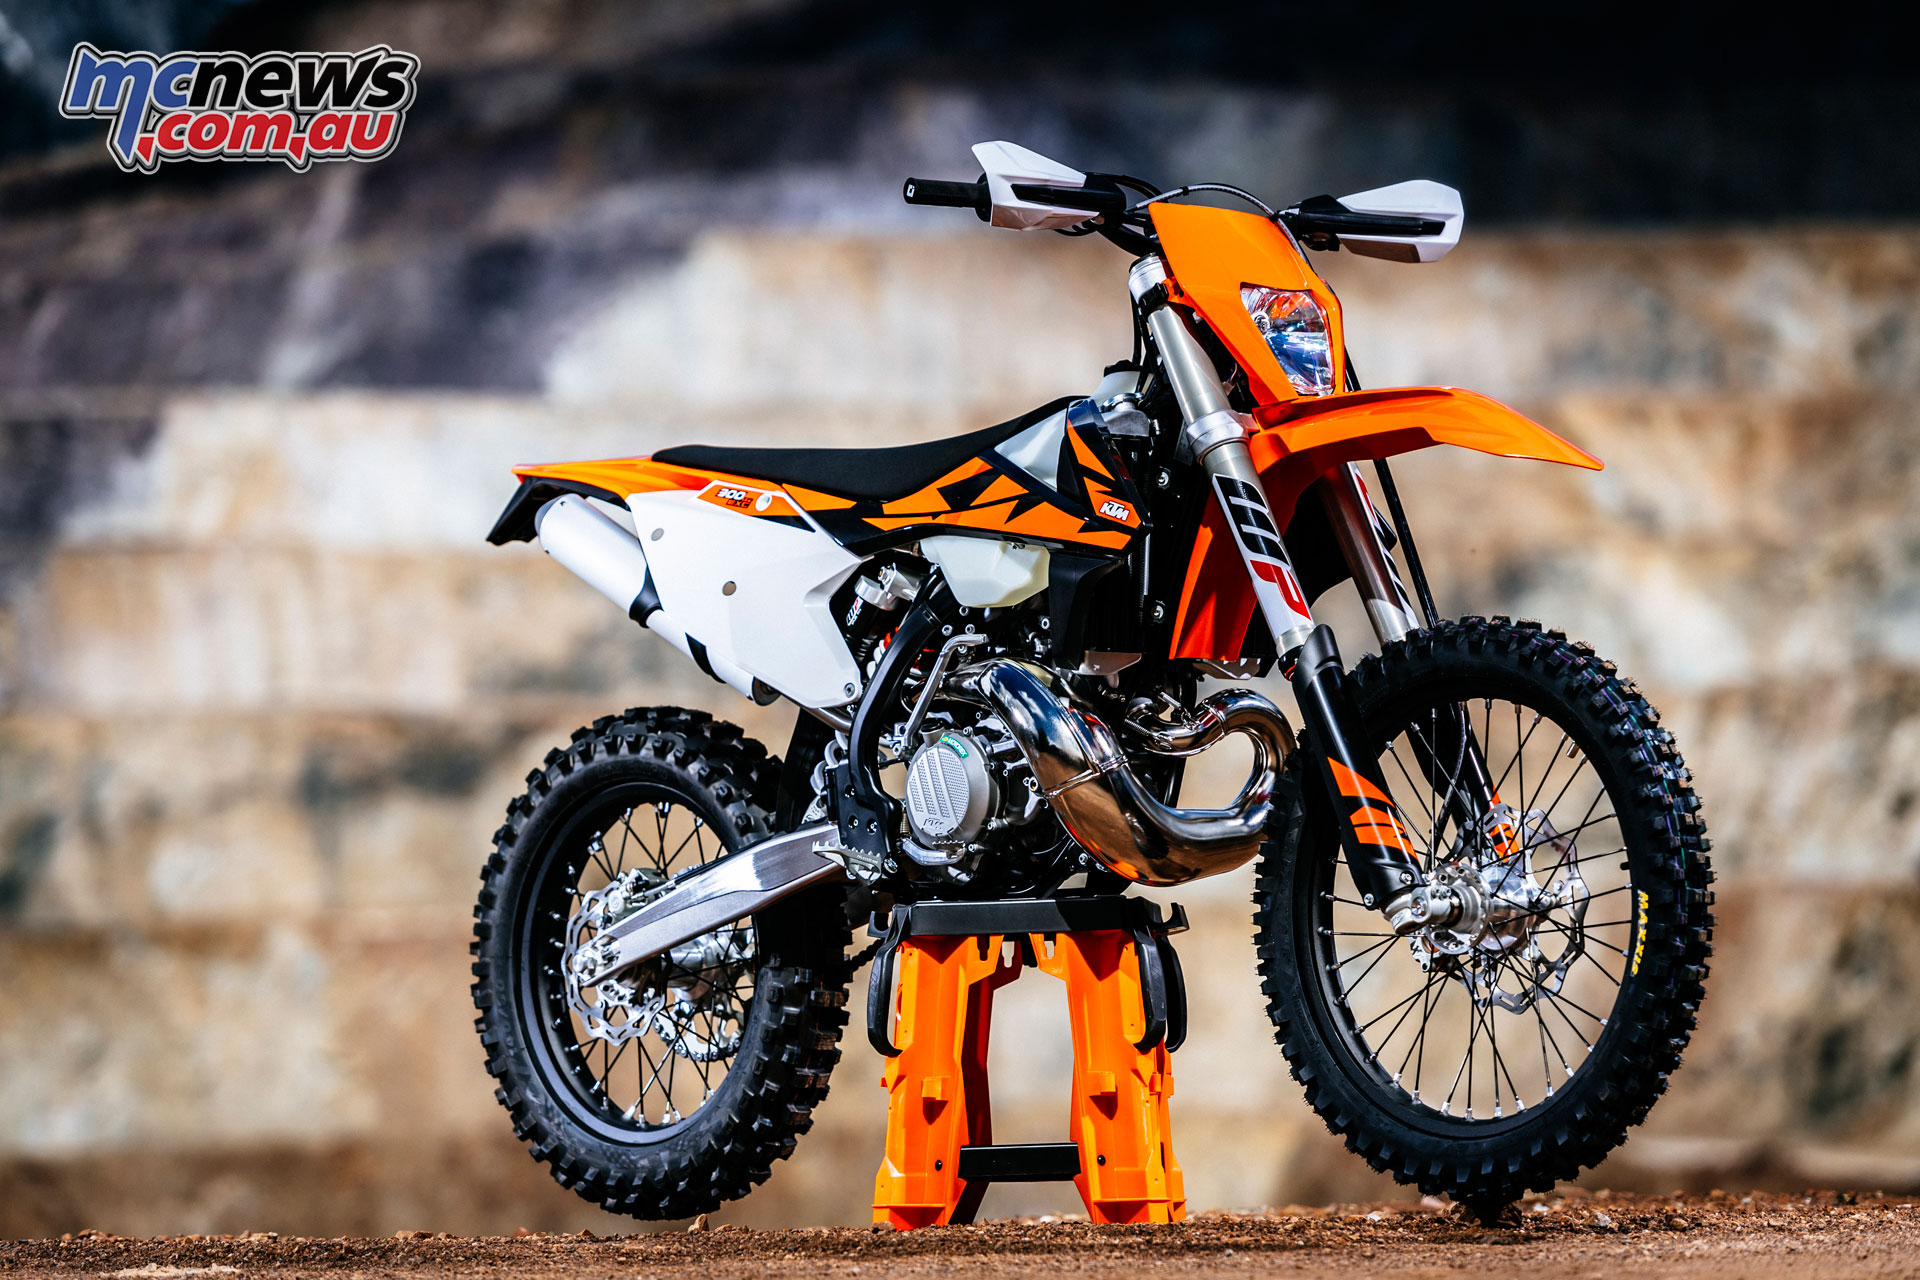 Dirtbike Top Tens by model segment category | Sales | MCNews